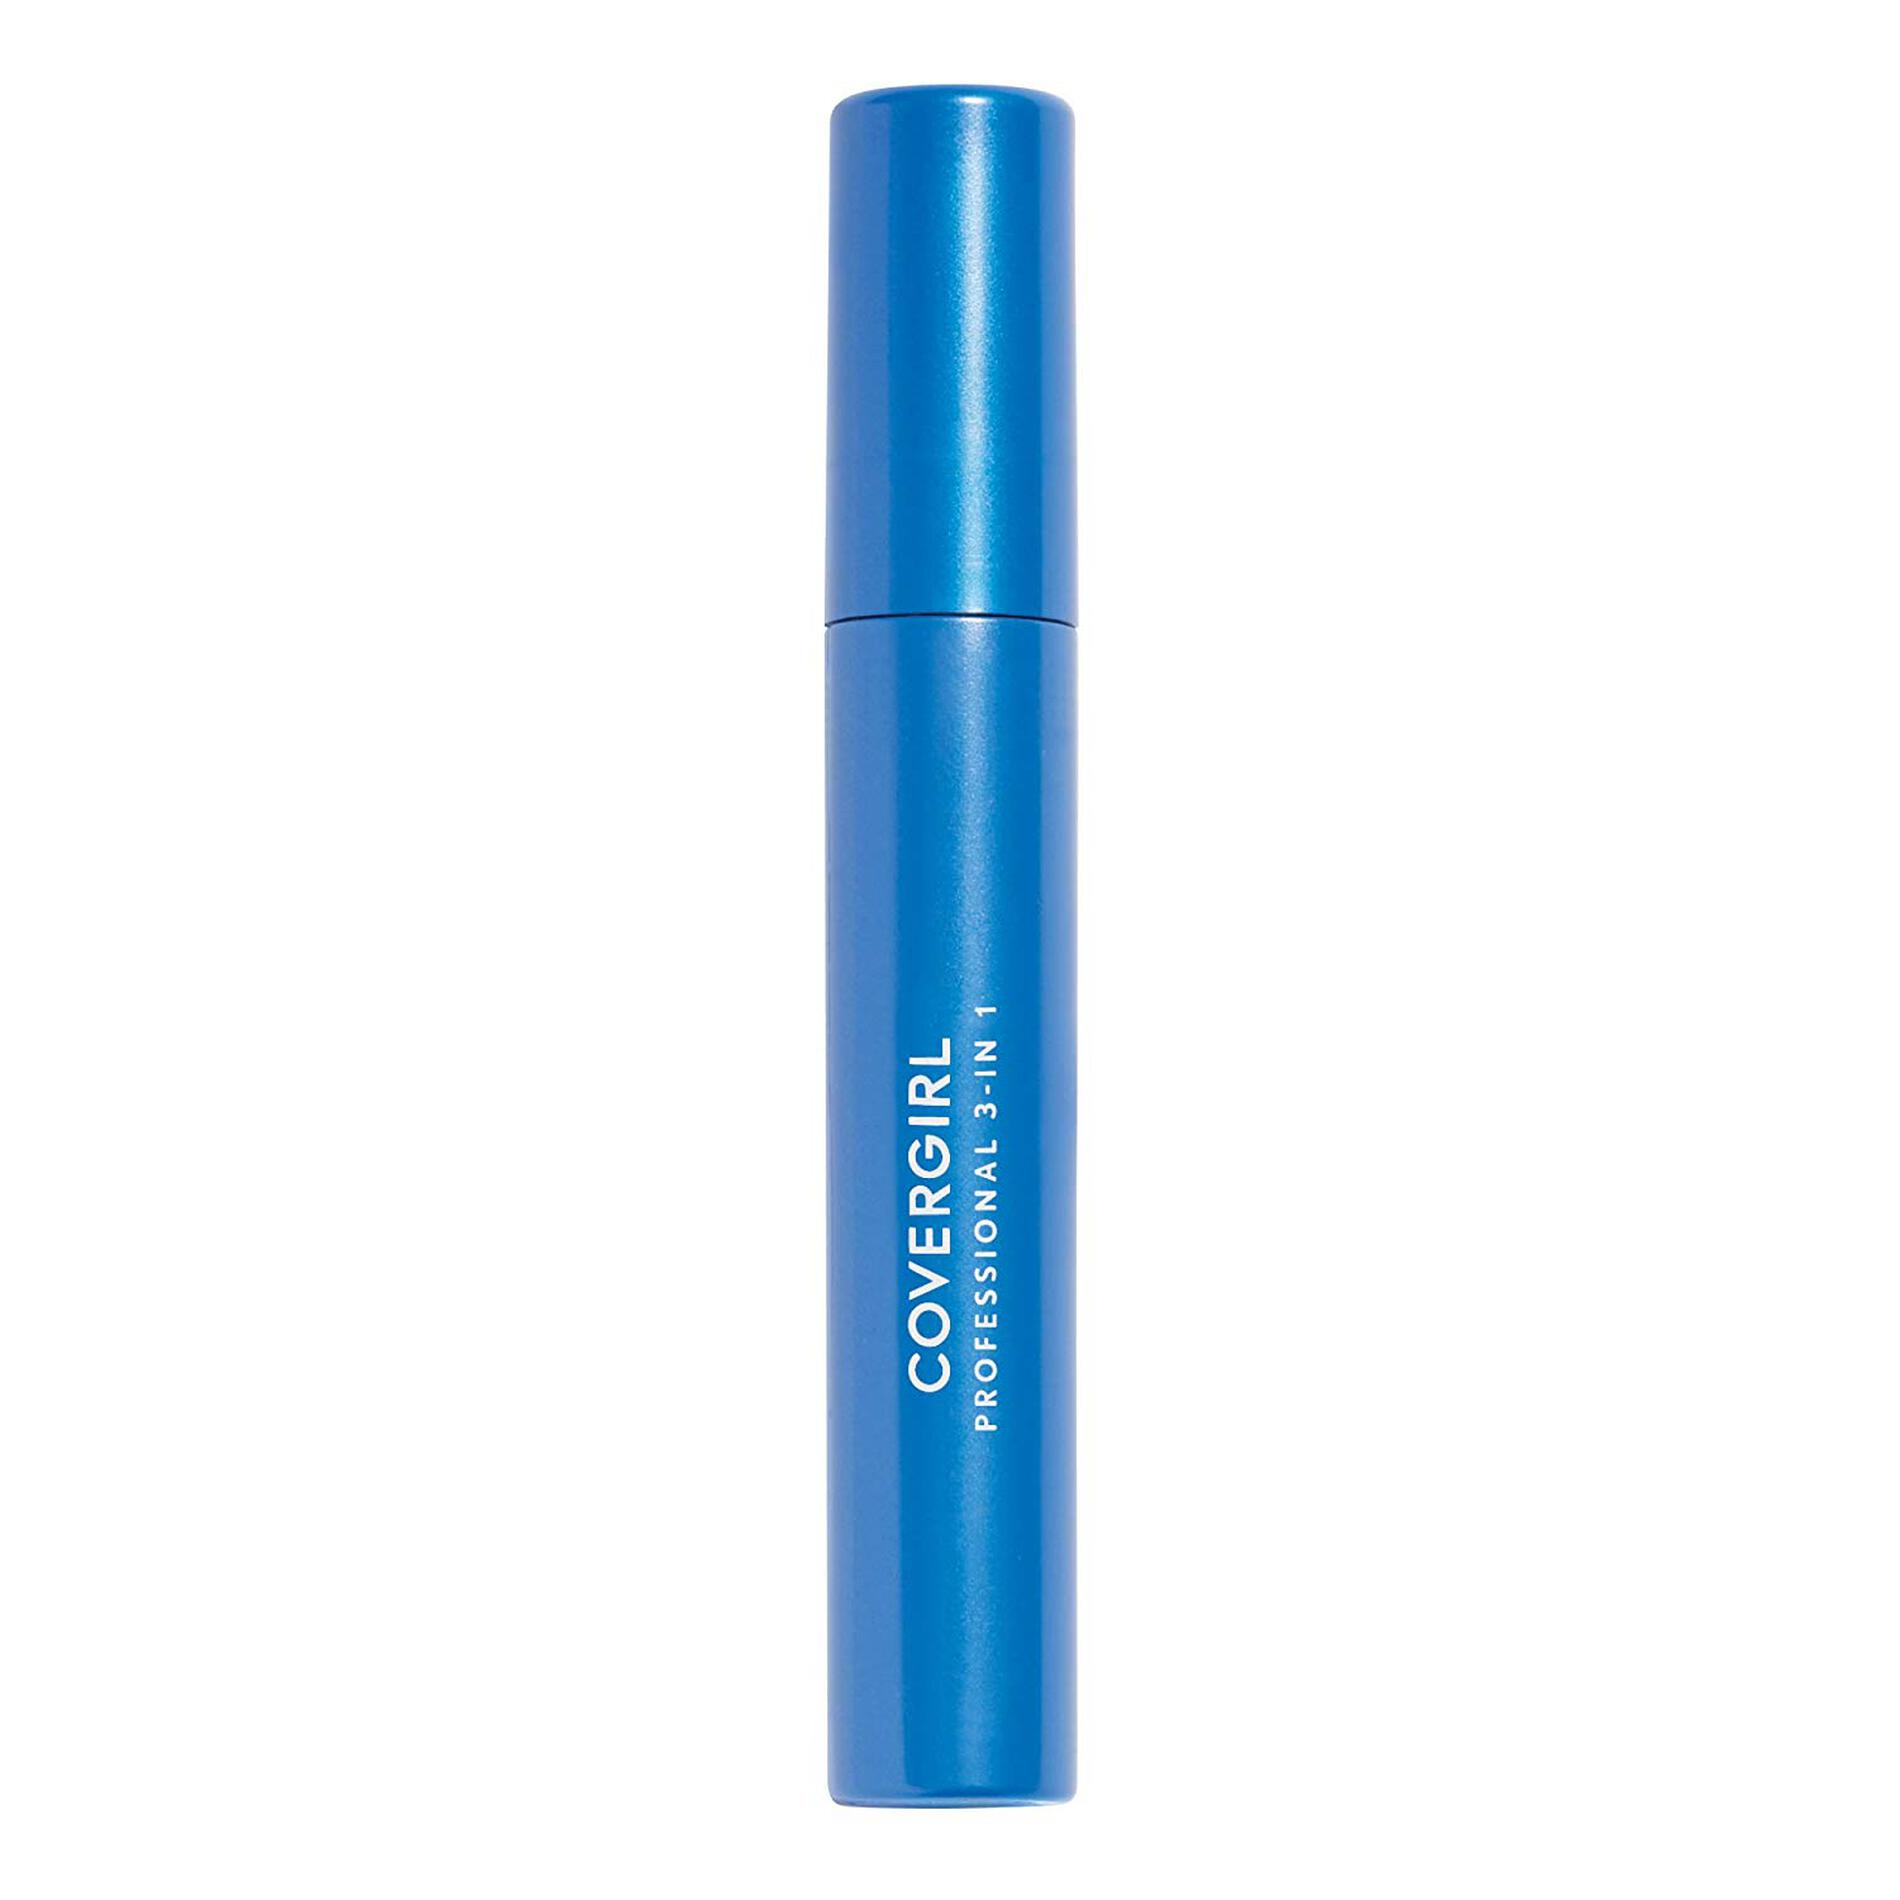 Covergirl All In One Curved Brush Mascara